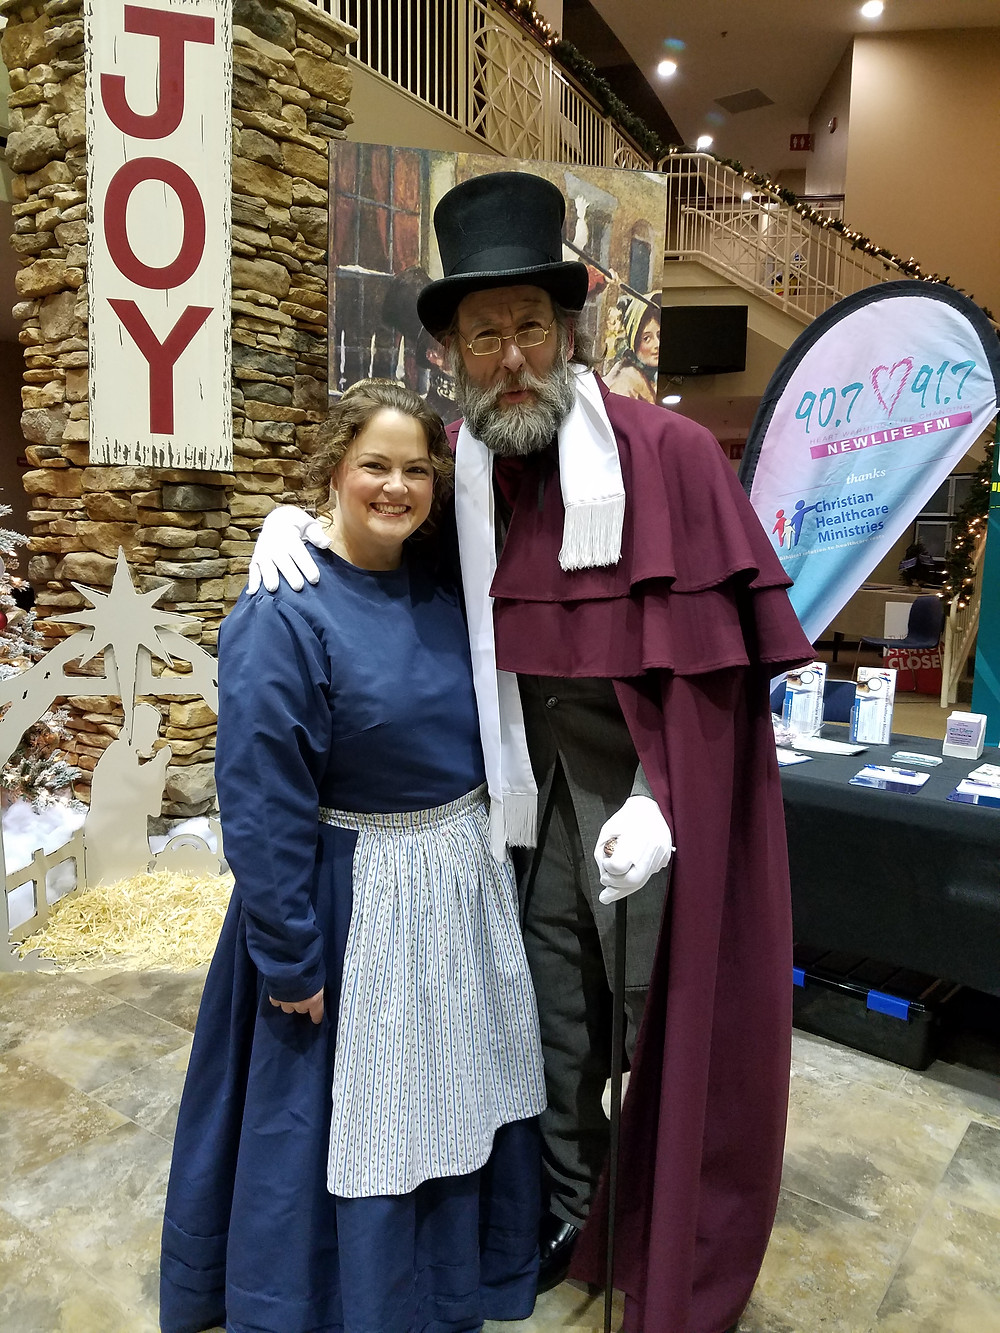 Me and Scrooge after a showing of A Christmas Carol